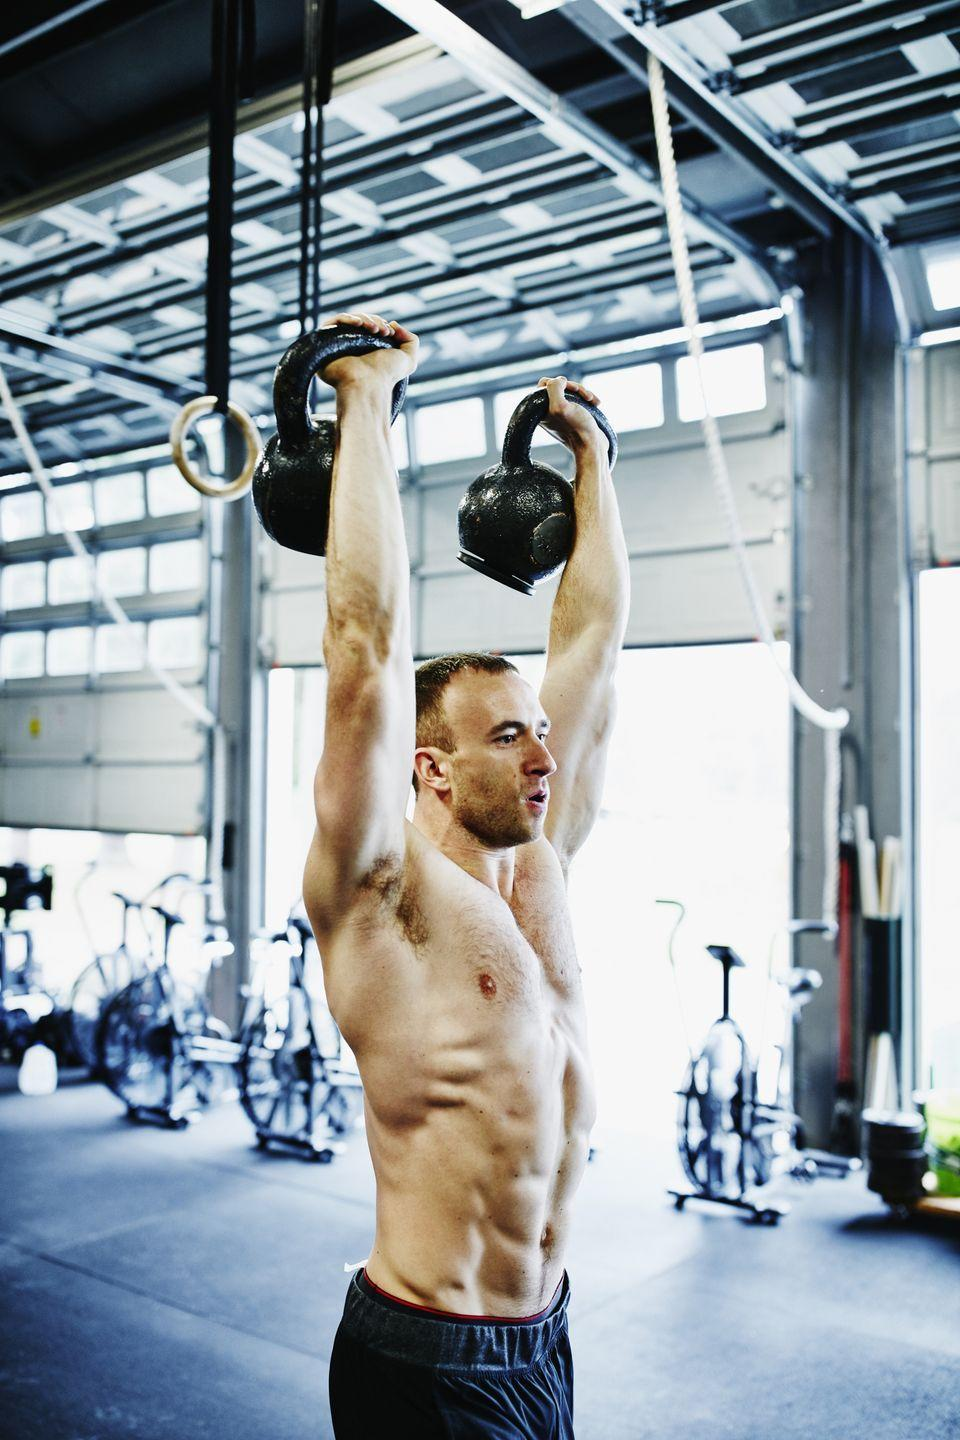 <p>This total body blast will torch your legs as you work through the squat motion of the thruster and the deadlift-like motion that the row calls for. Get ready to break a killer sweat. You can do this workout with either dumbbells or kettlebells in addition to your rower. </p><p>Warm up for five minutes. Then do the following exercises in the order shown.</p><p>- Row, 500 meters, as fast as possible.</p><p>- Dumbbell or kettlebell thruster, 25 reps</p><p>- That's 1 round. Do 4 total rounds, resting as needed between rounds and reps of thrusters. Aim to complete the workout in less than 20 minutes.</p>